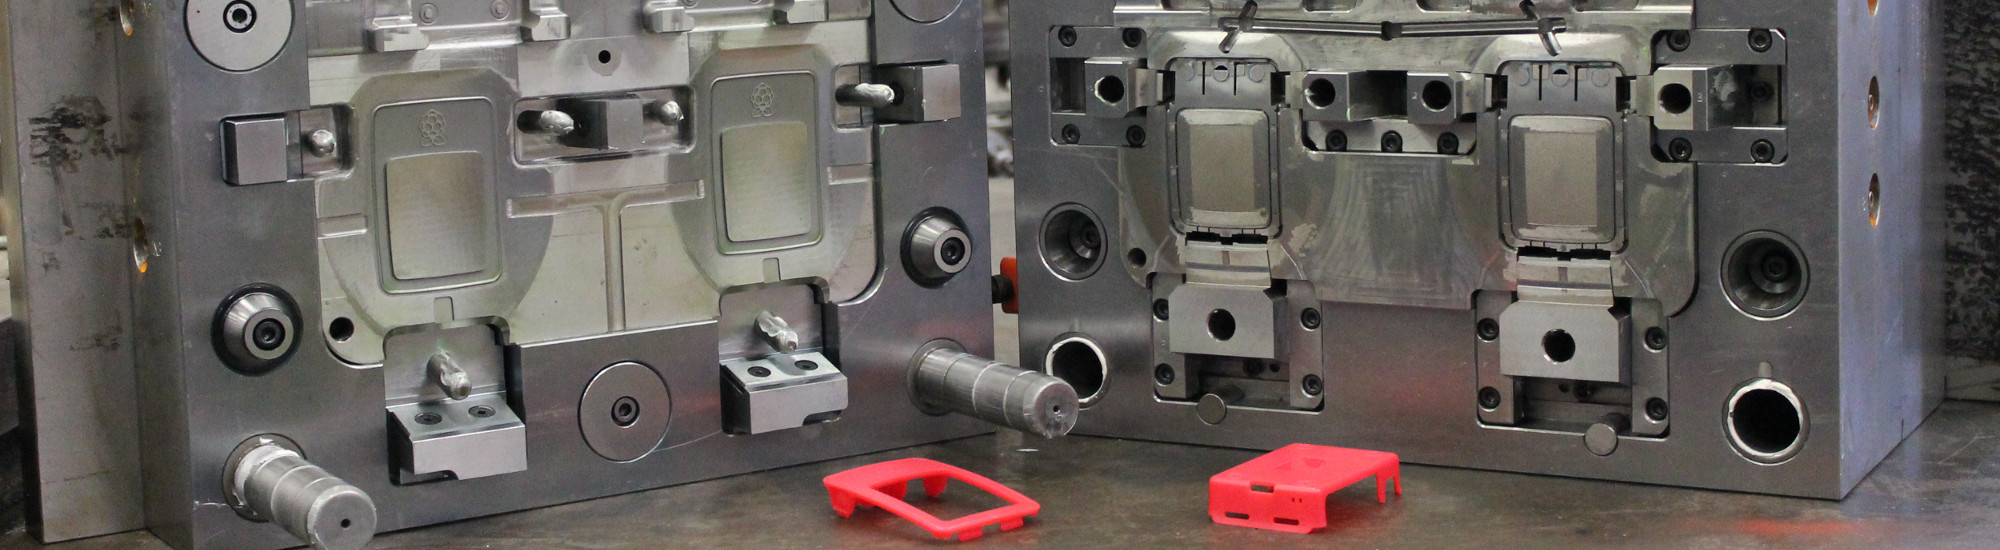 KPT UK Toolmakers - Injection Moulds & die casting tooling